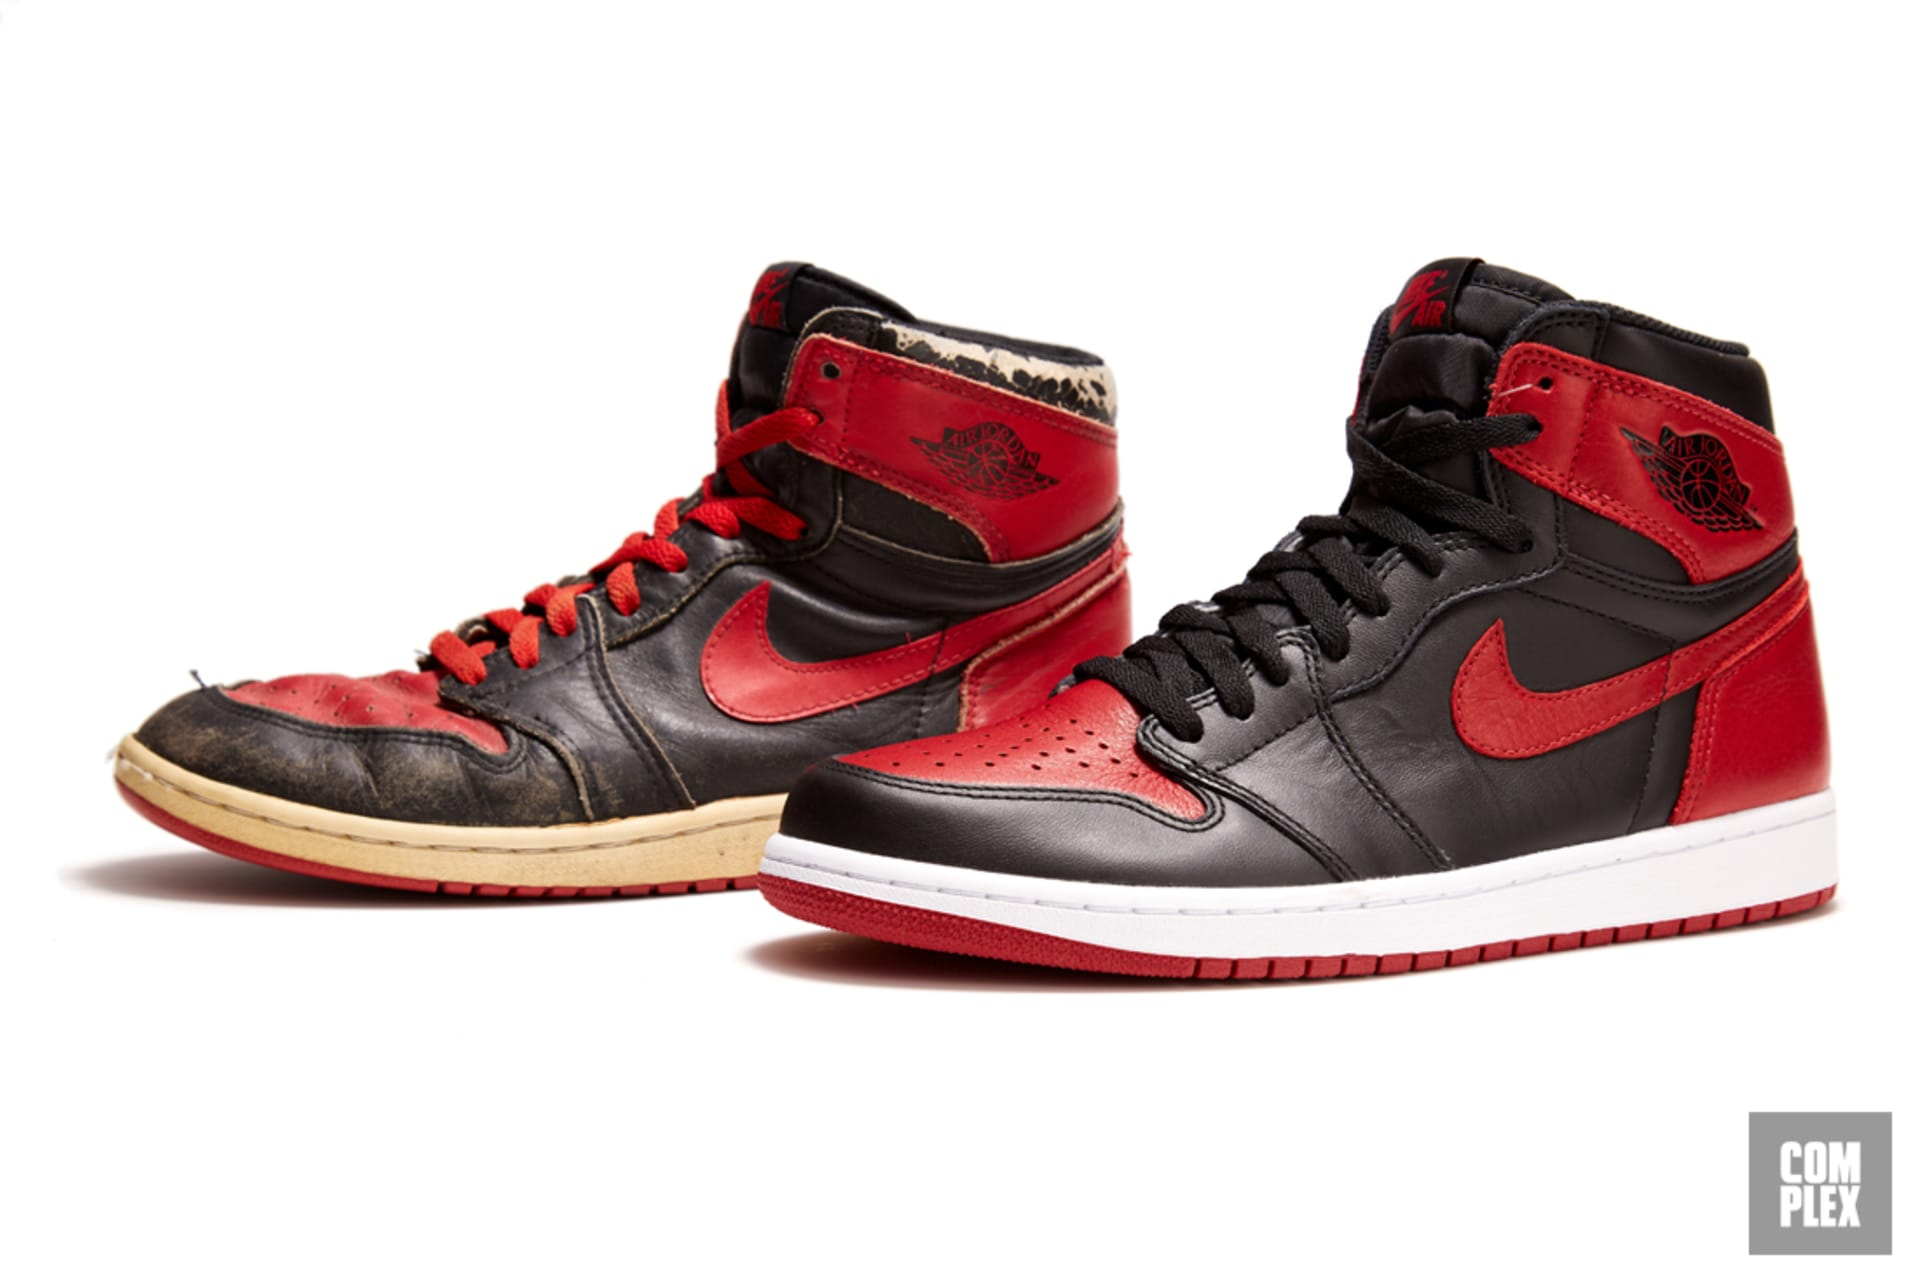 d2adb3fc8f4278 The Evolution of the Black and Red Air Jordan 1